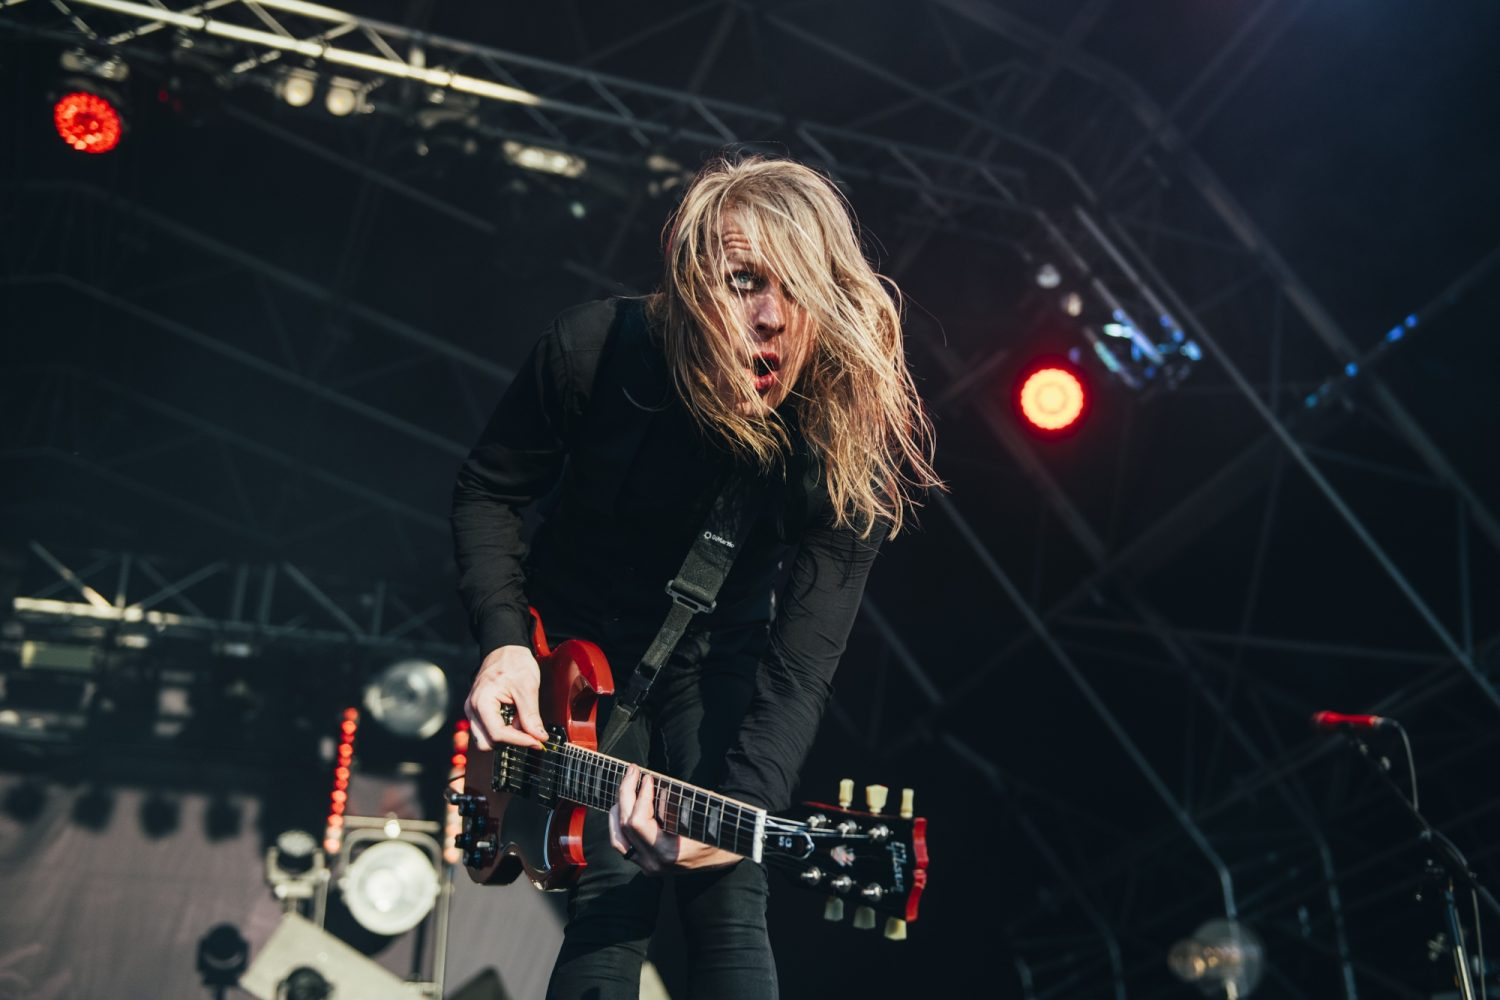 Here's more than 70 photos of As It Is smashing it at 2000trees, just because